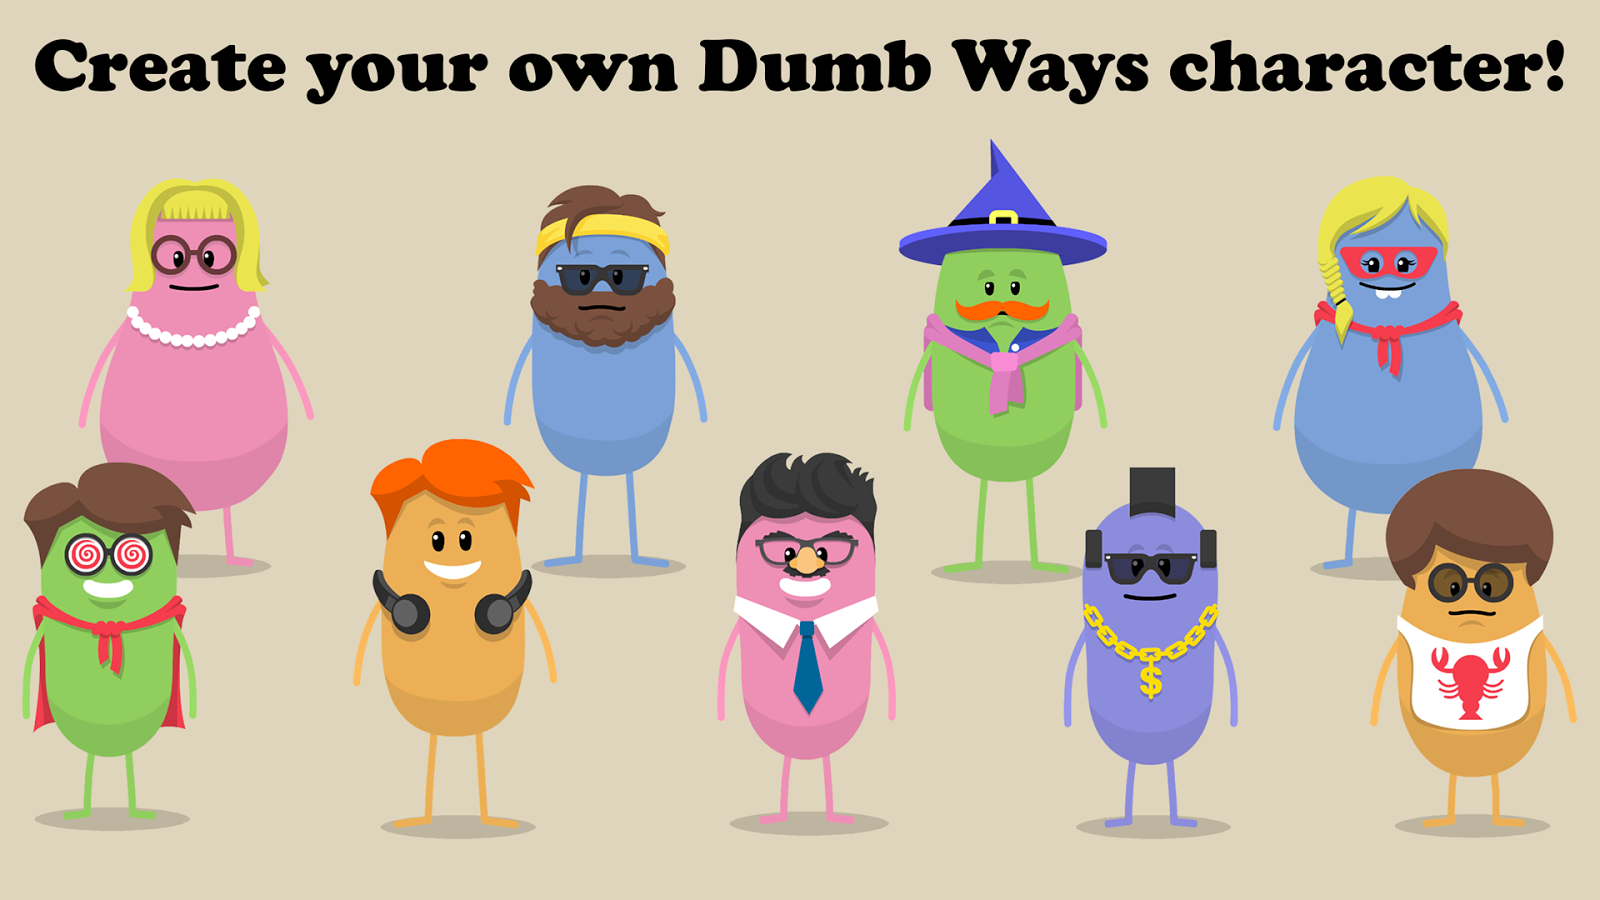 Dumb Ways To Die Original Android Apps On Google Play - Every time you feel dumb